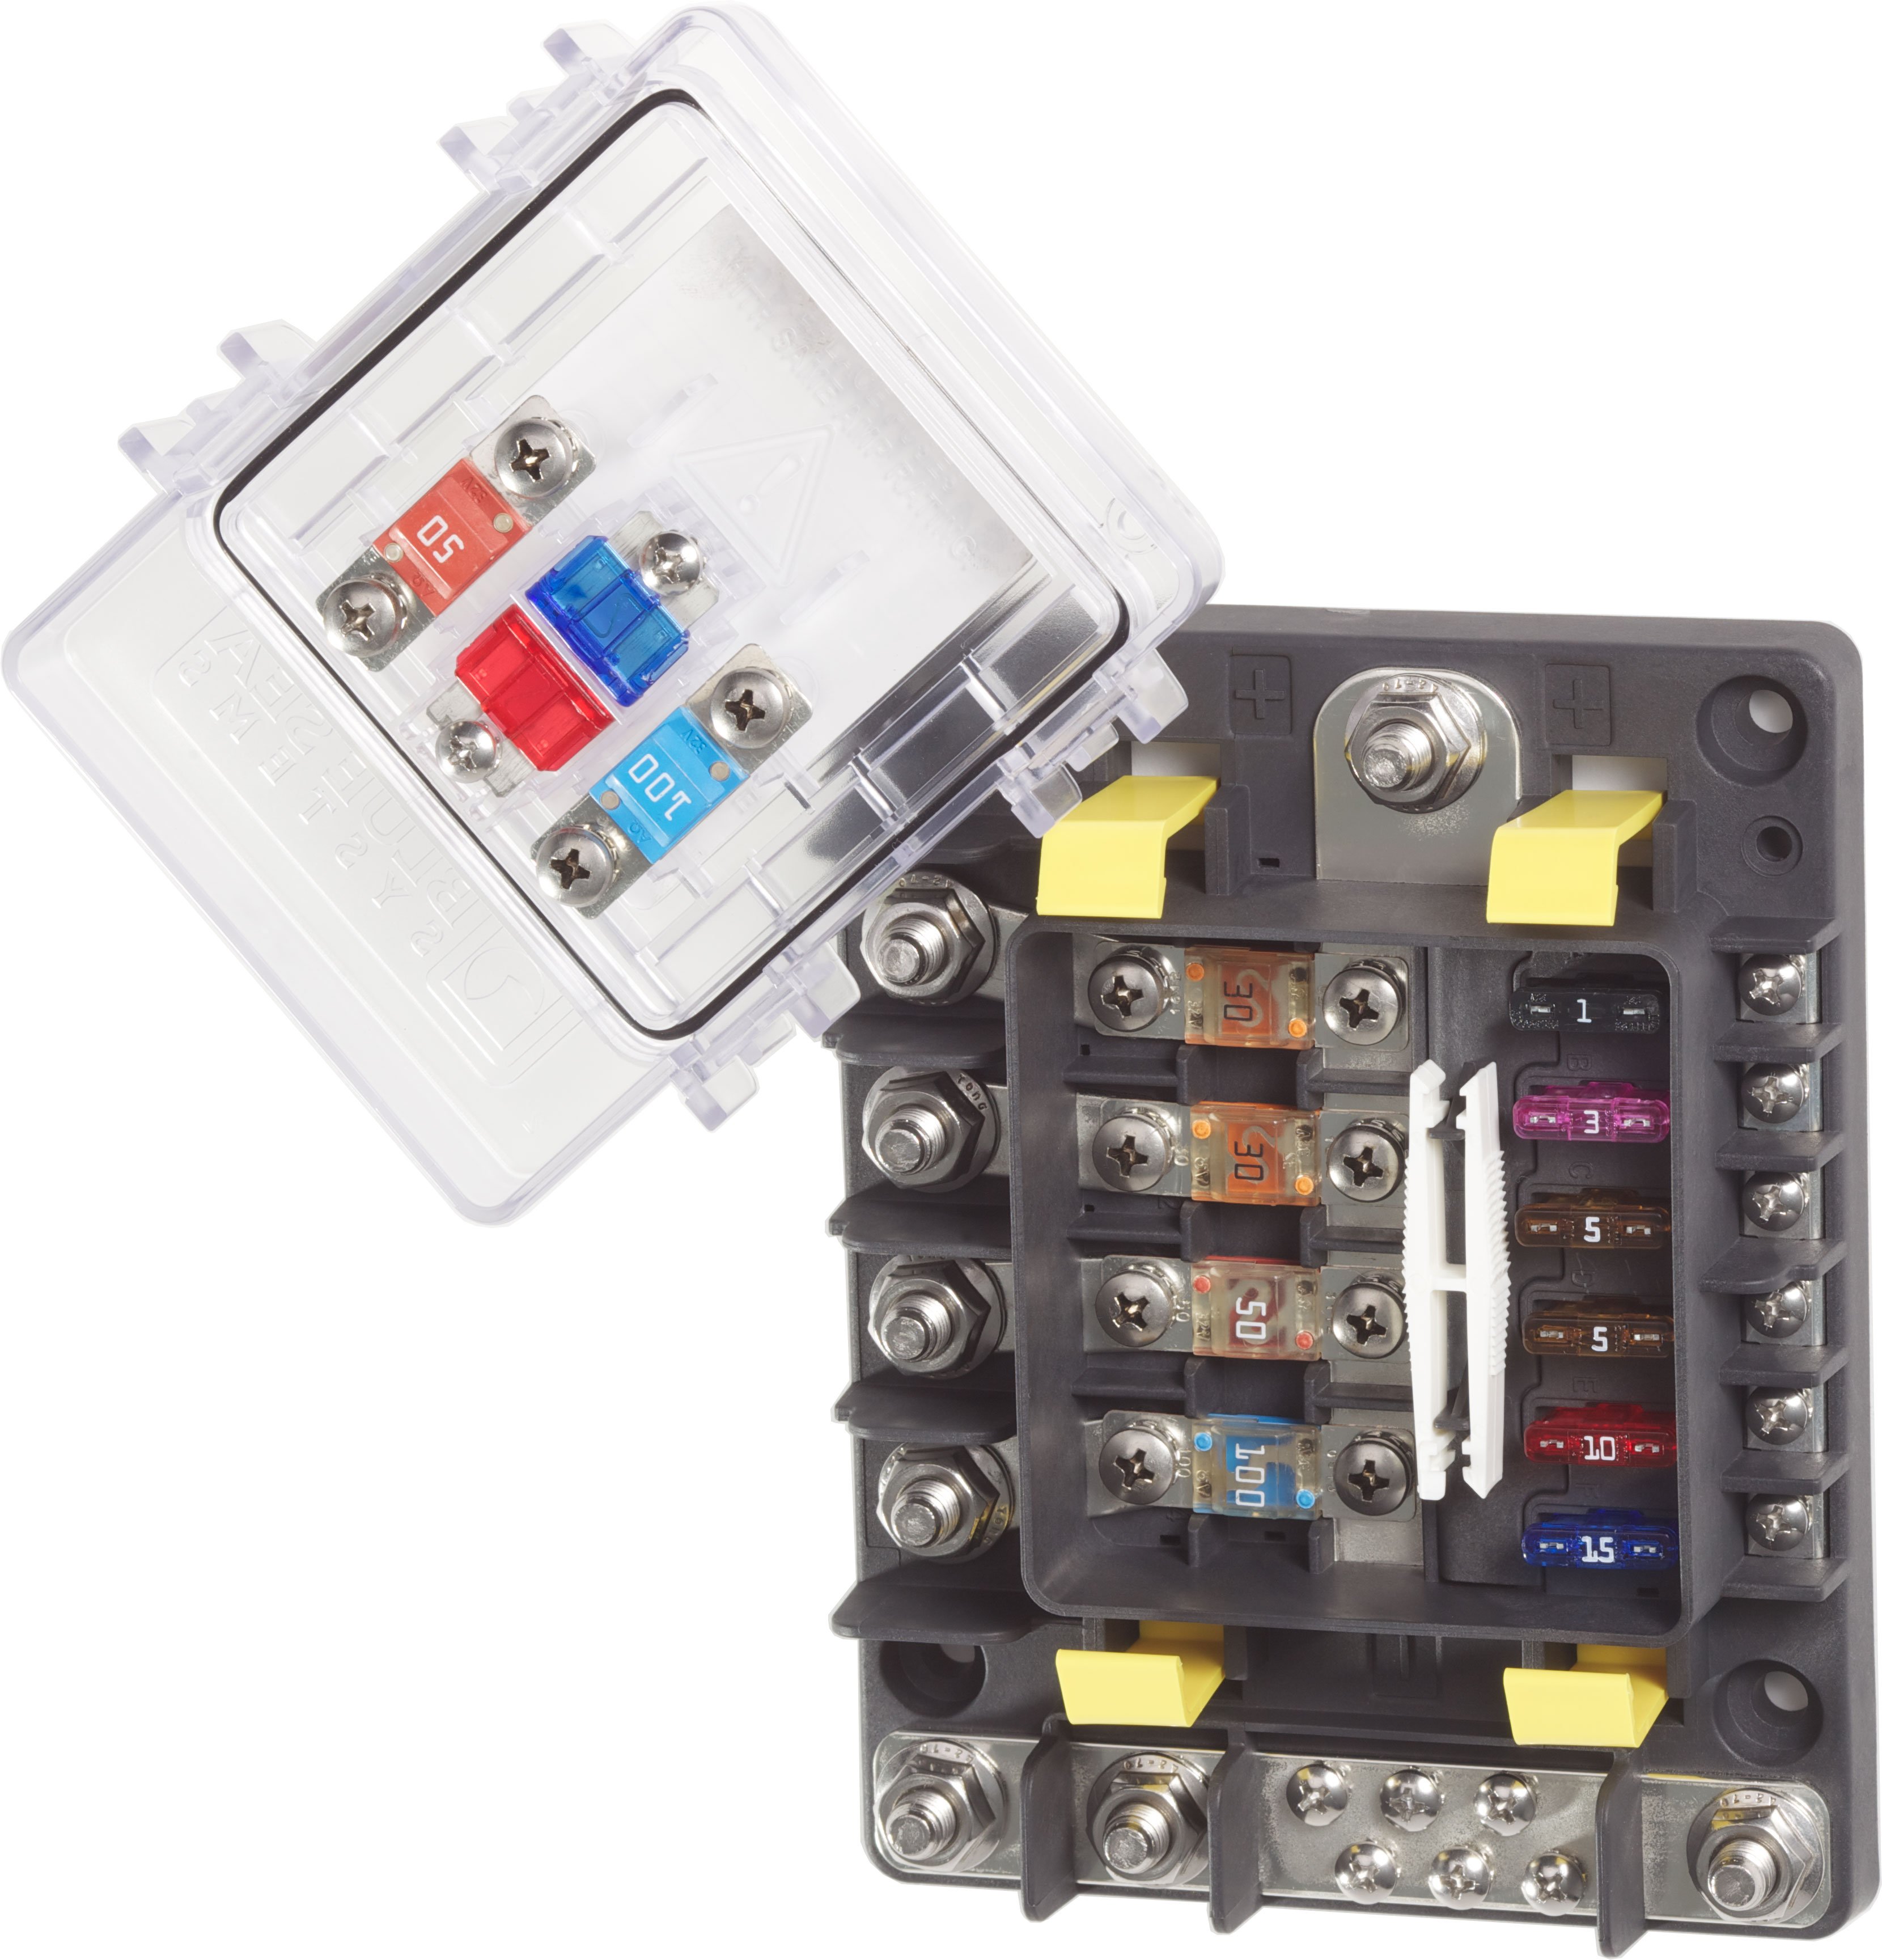 7748 safetyhub 150 fuse block blue sea systems Automotive Fuse Box at webbmarketing.co